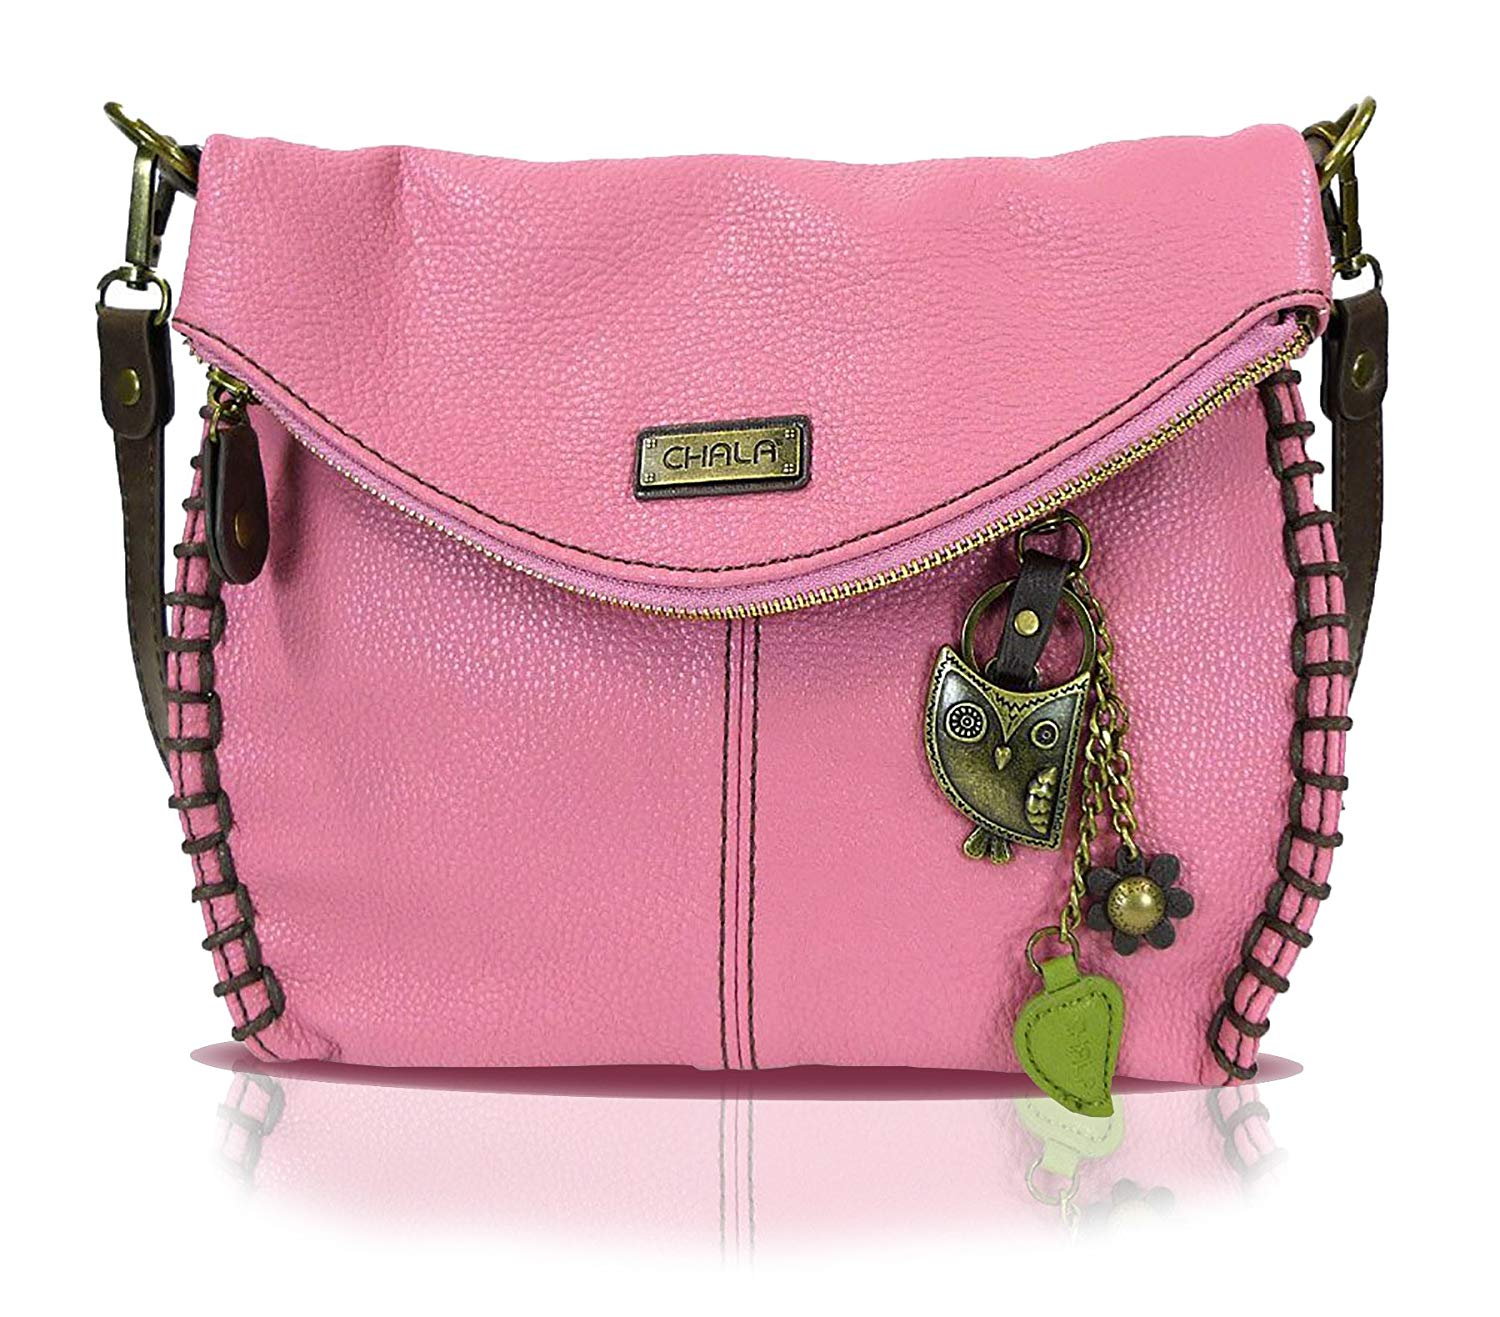 92a290905e31 Get Quotations · Chala Charming Crossbody Bag With Flap Top